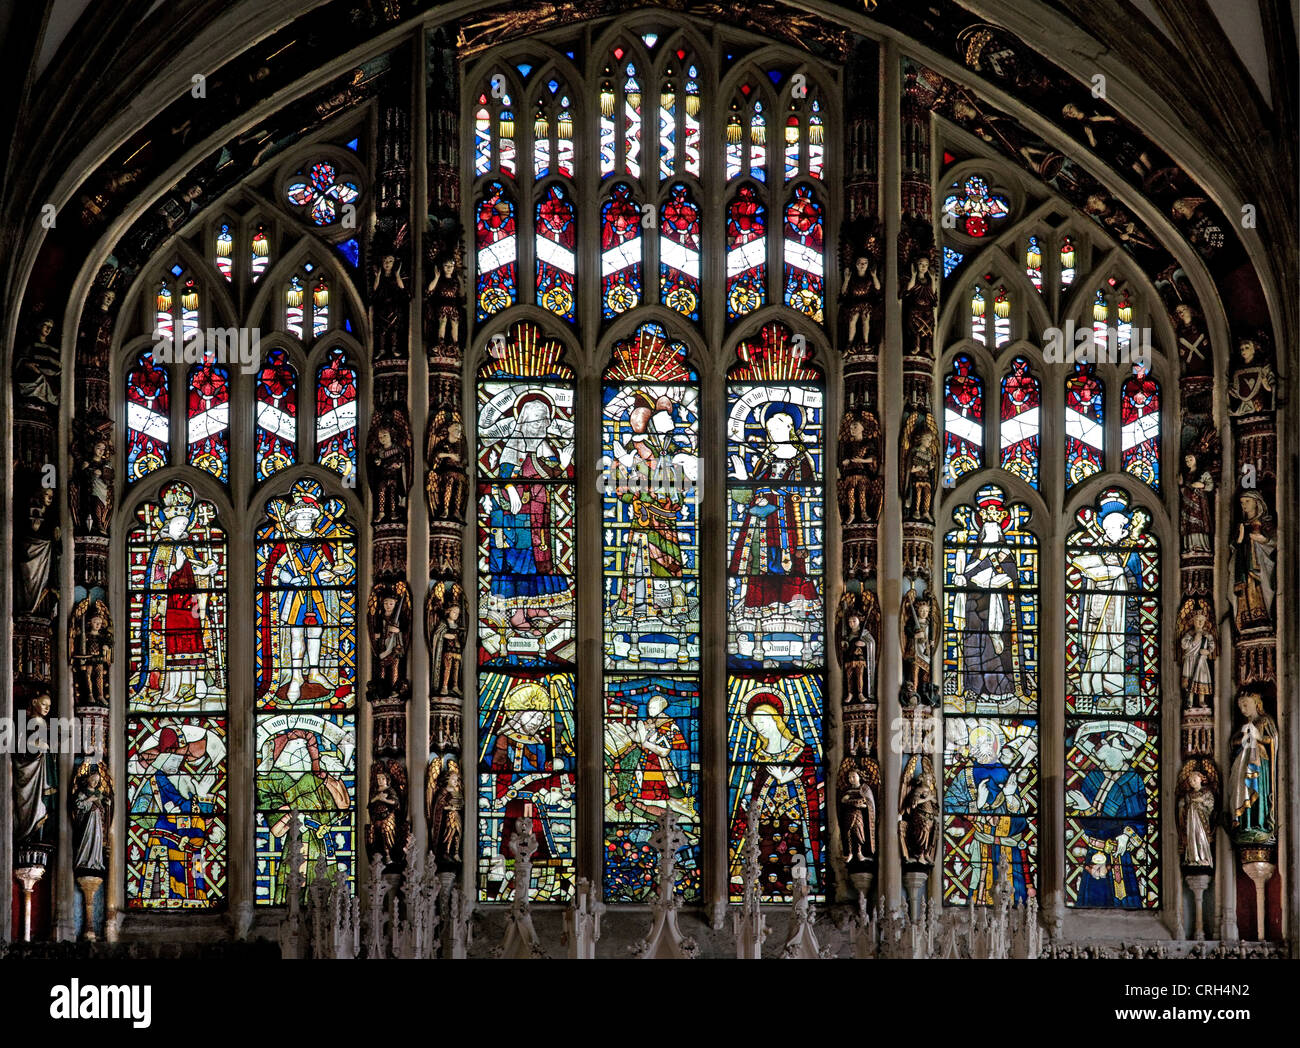 Great East Stained Glass Window Of St Marys Collegiate Church Warwick England With Fine Medieval Jewelled